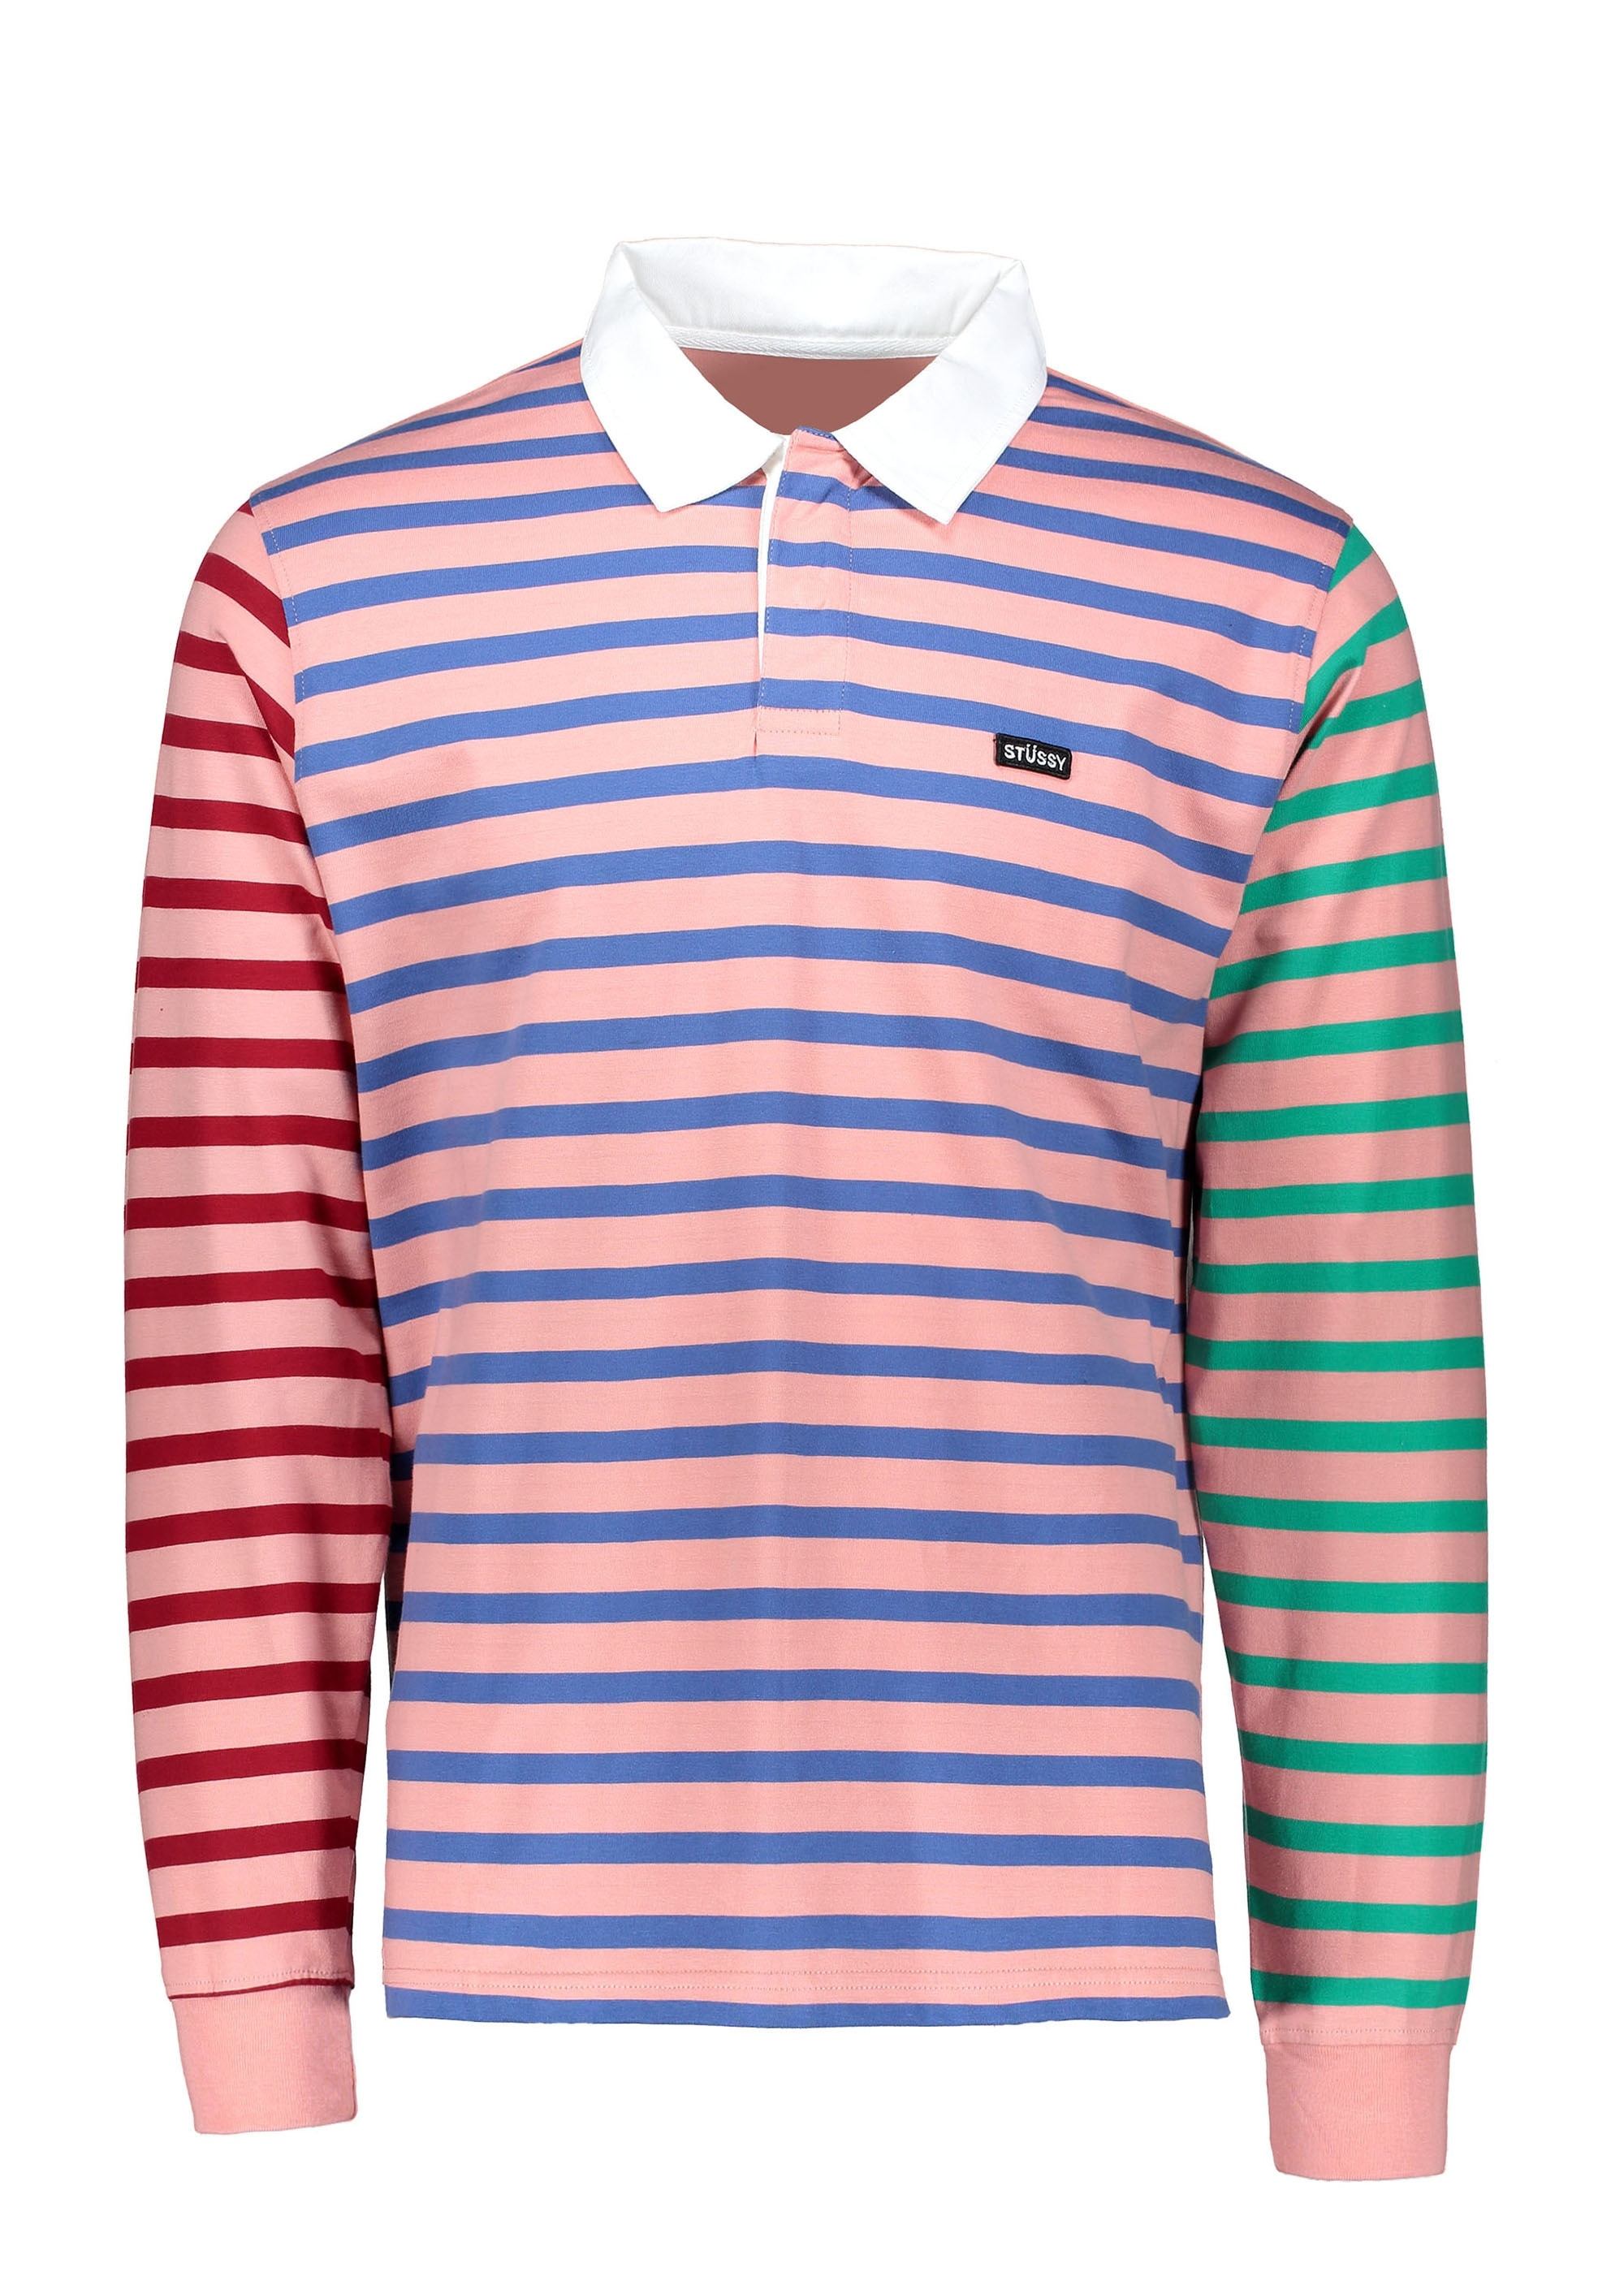 1862787b380 Stussy Jonah Stripe LS - Rugby Pink - Triads Mens from Triads UK